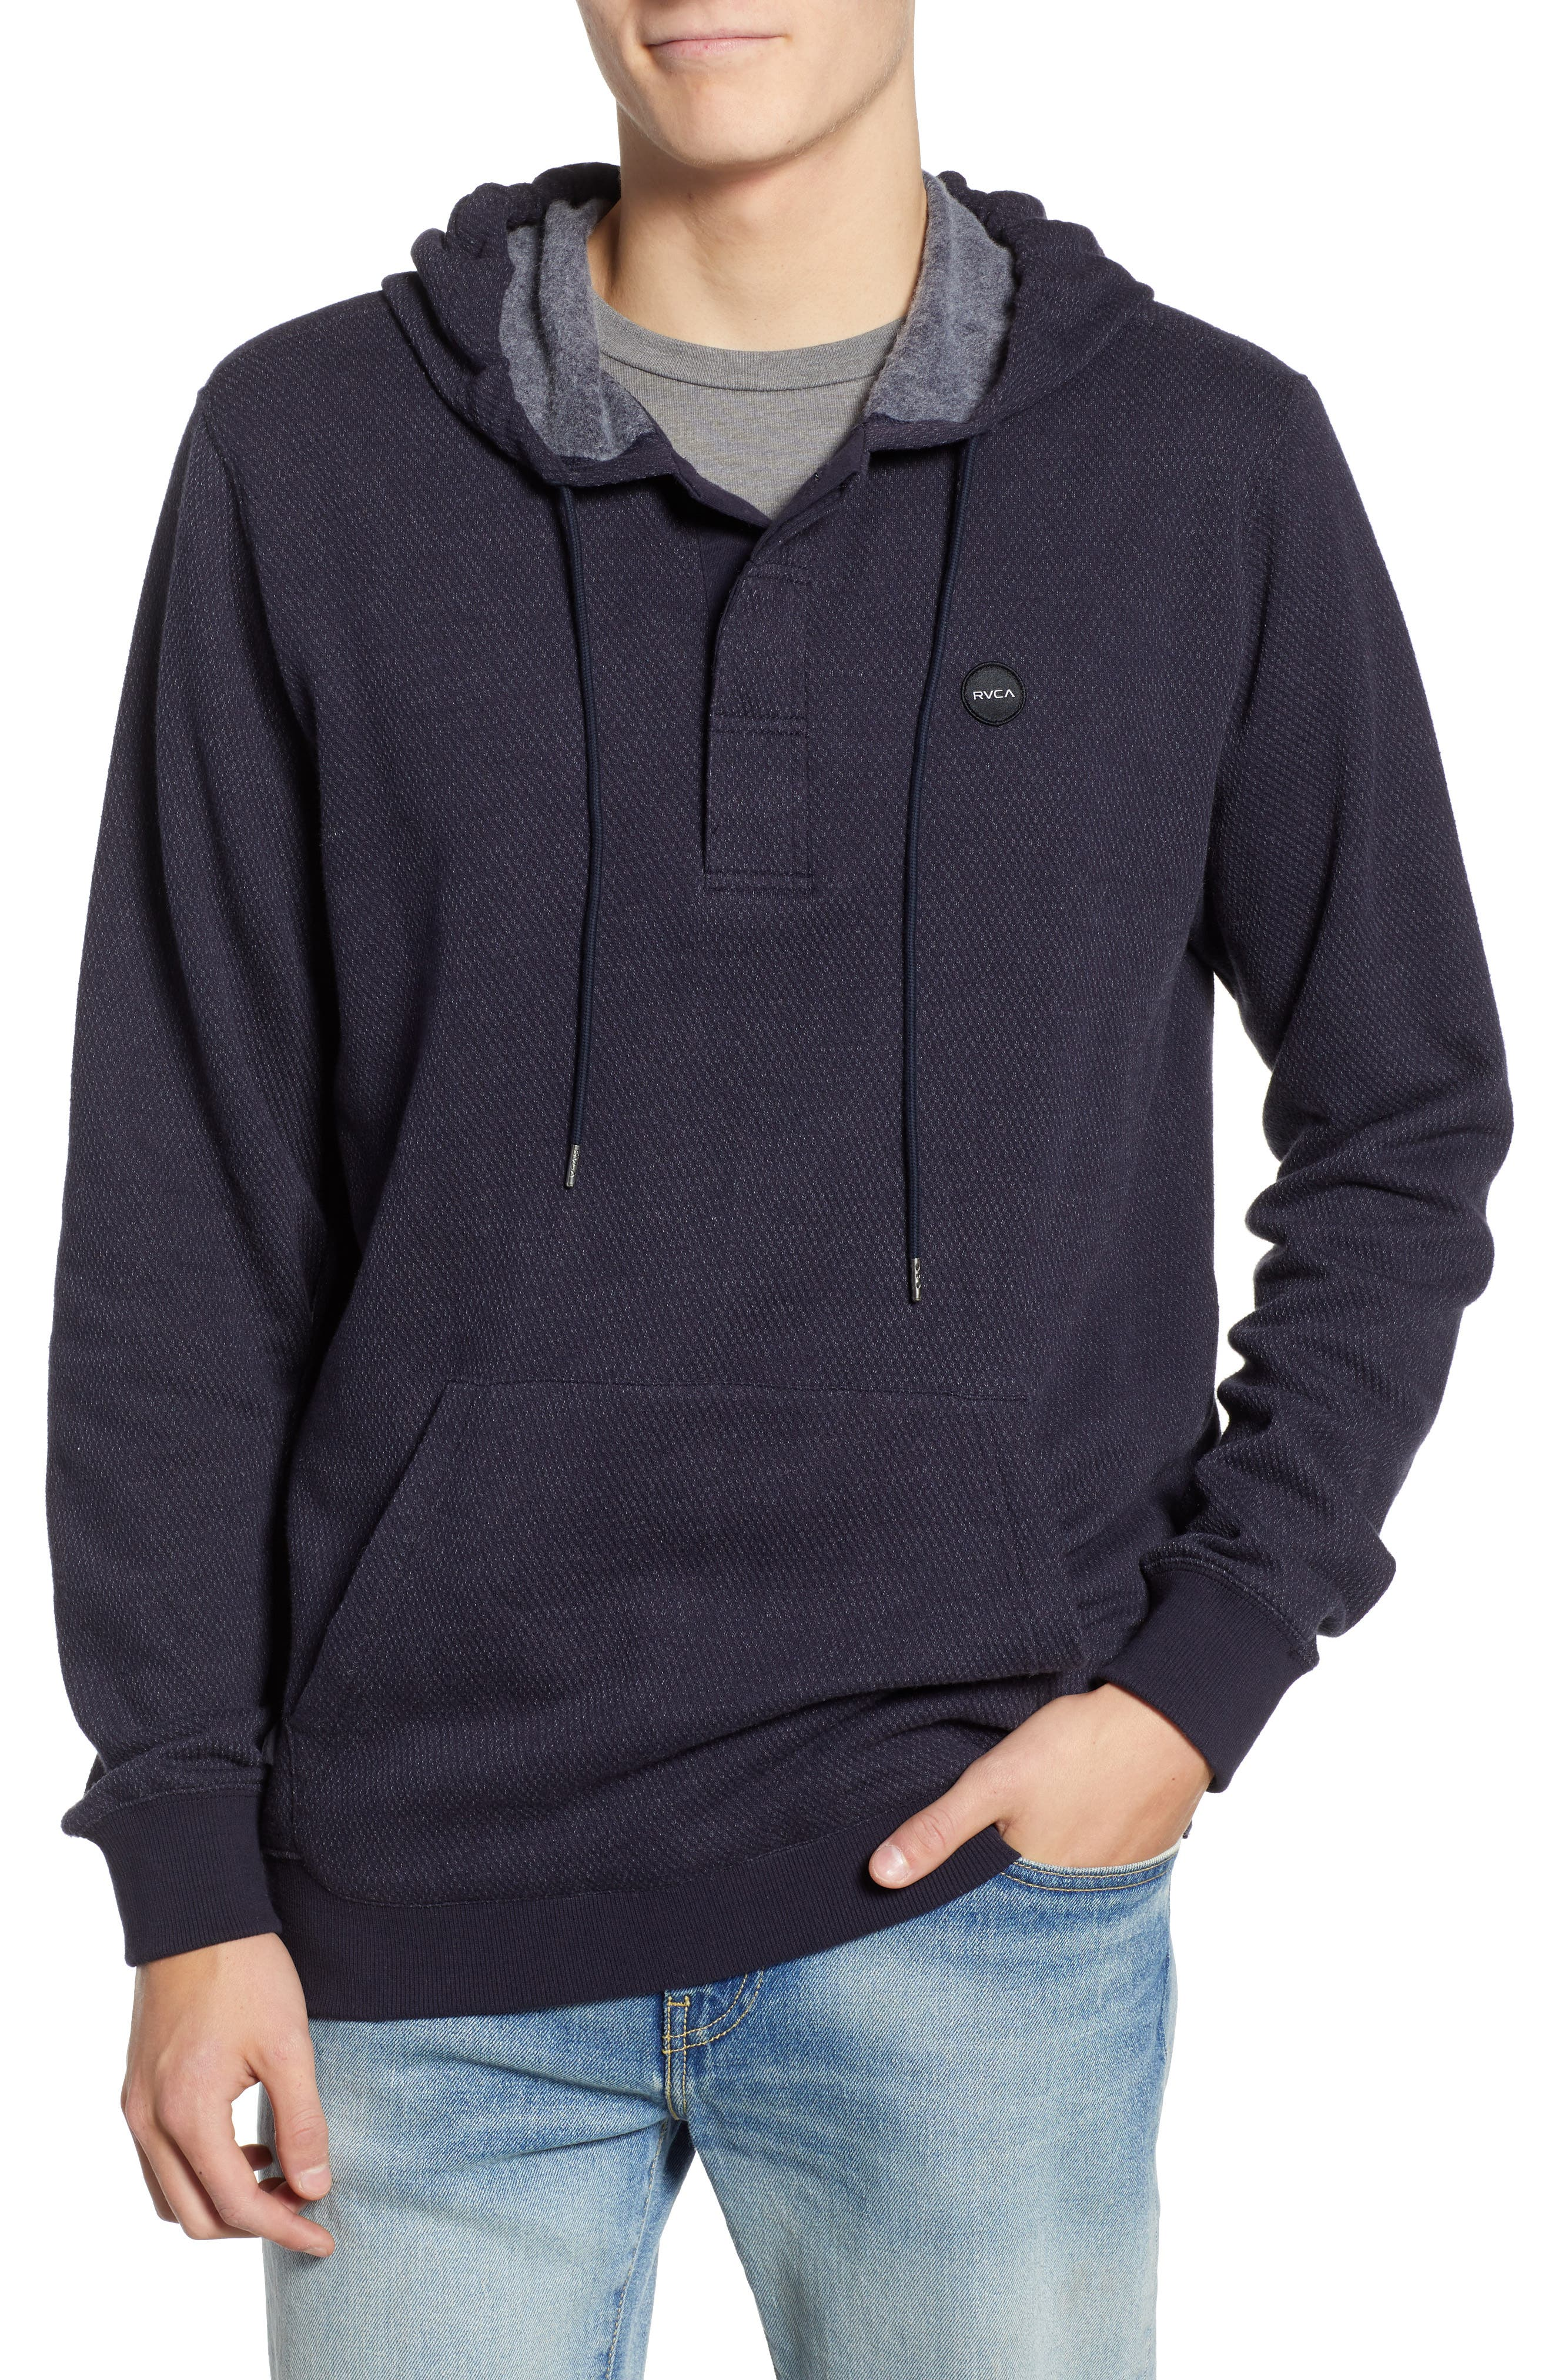 Lupo Pullover Hoodie,                         Main,                         color, NEW NAVY